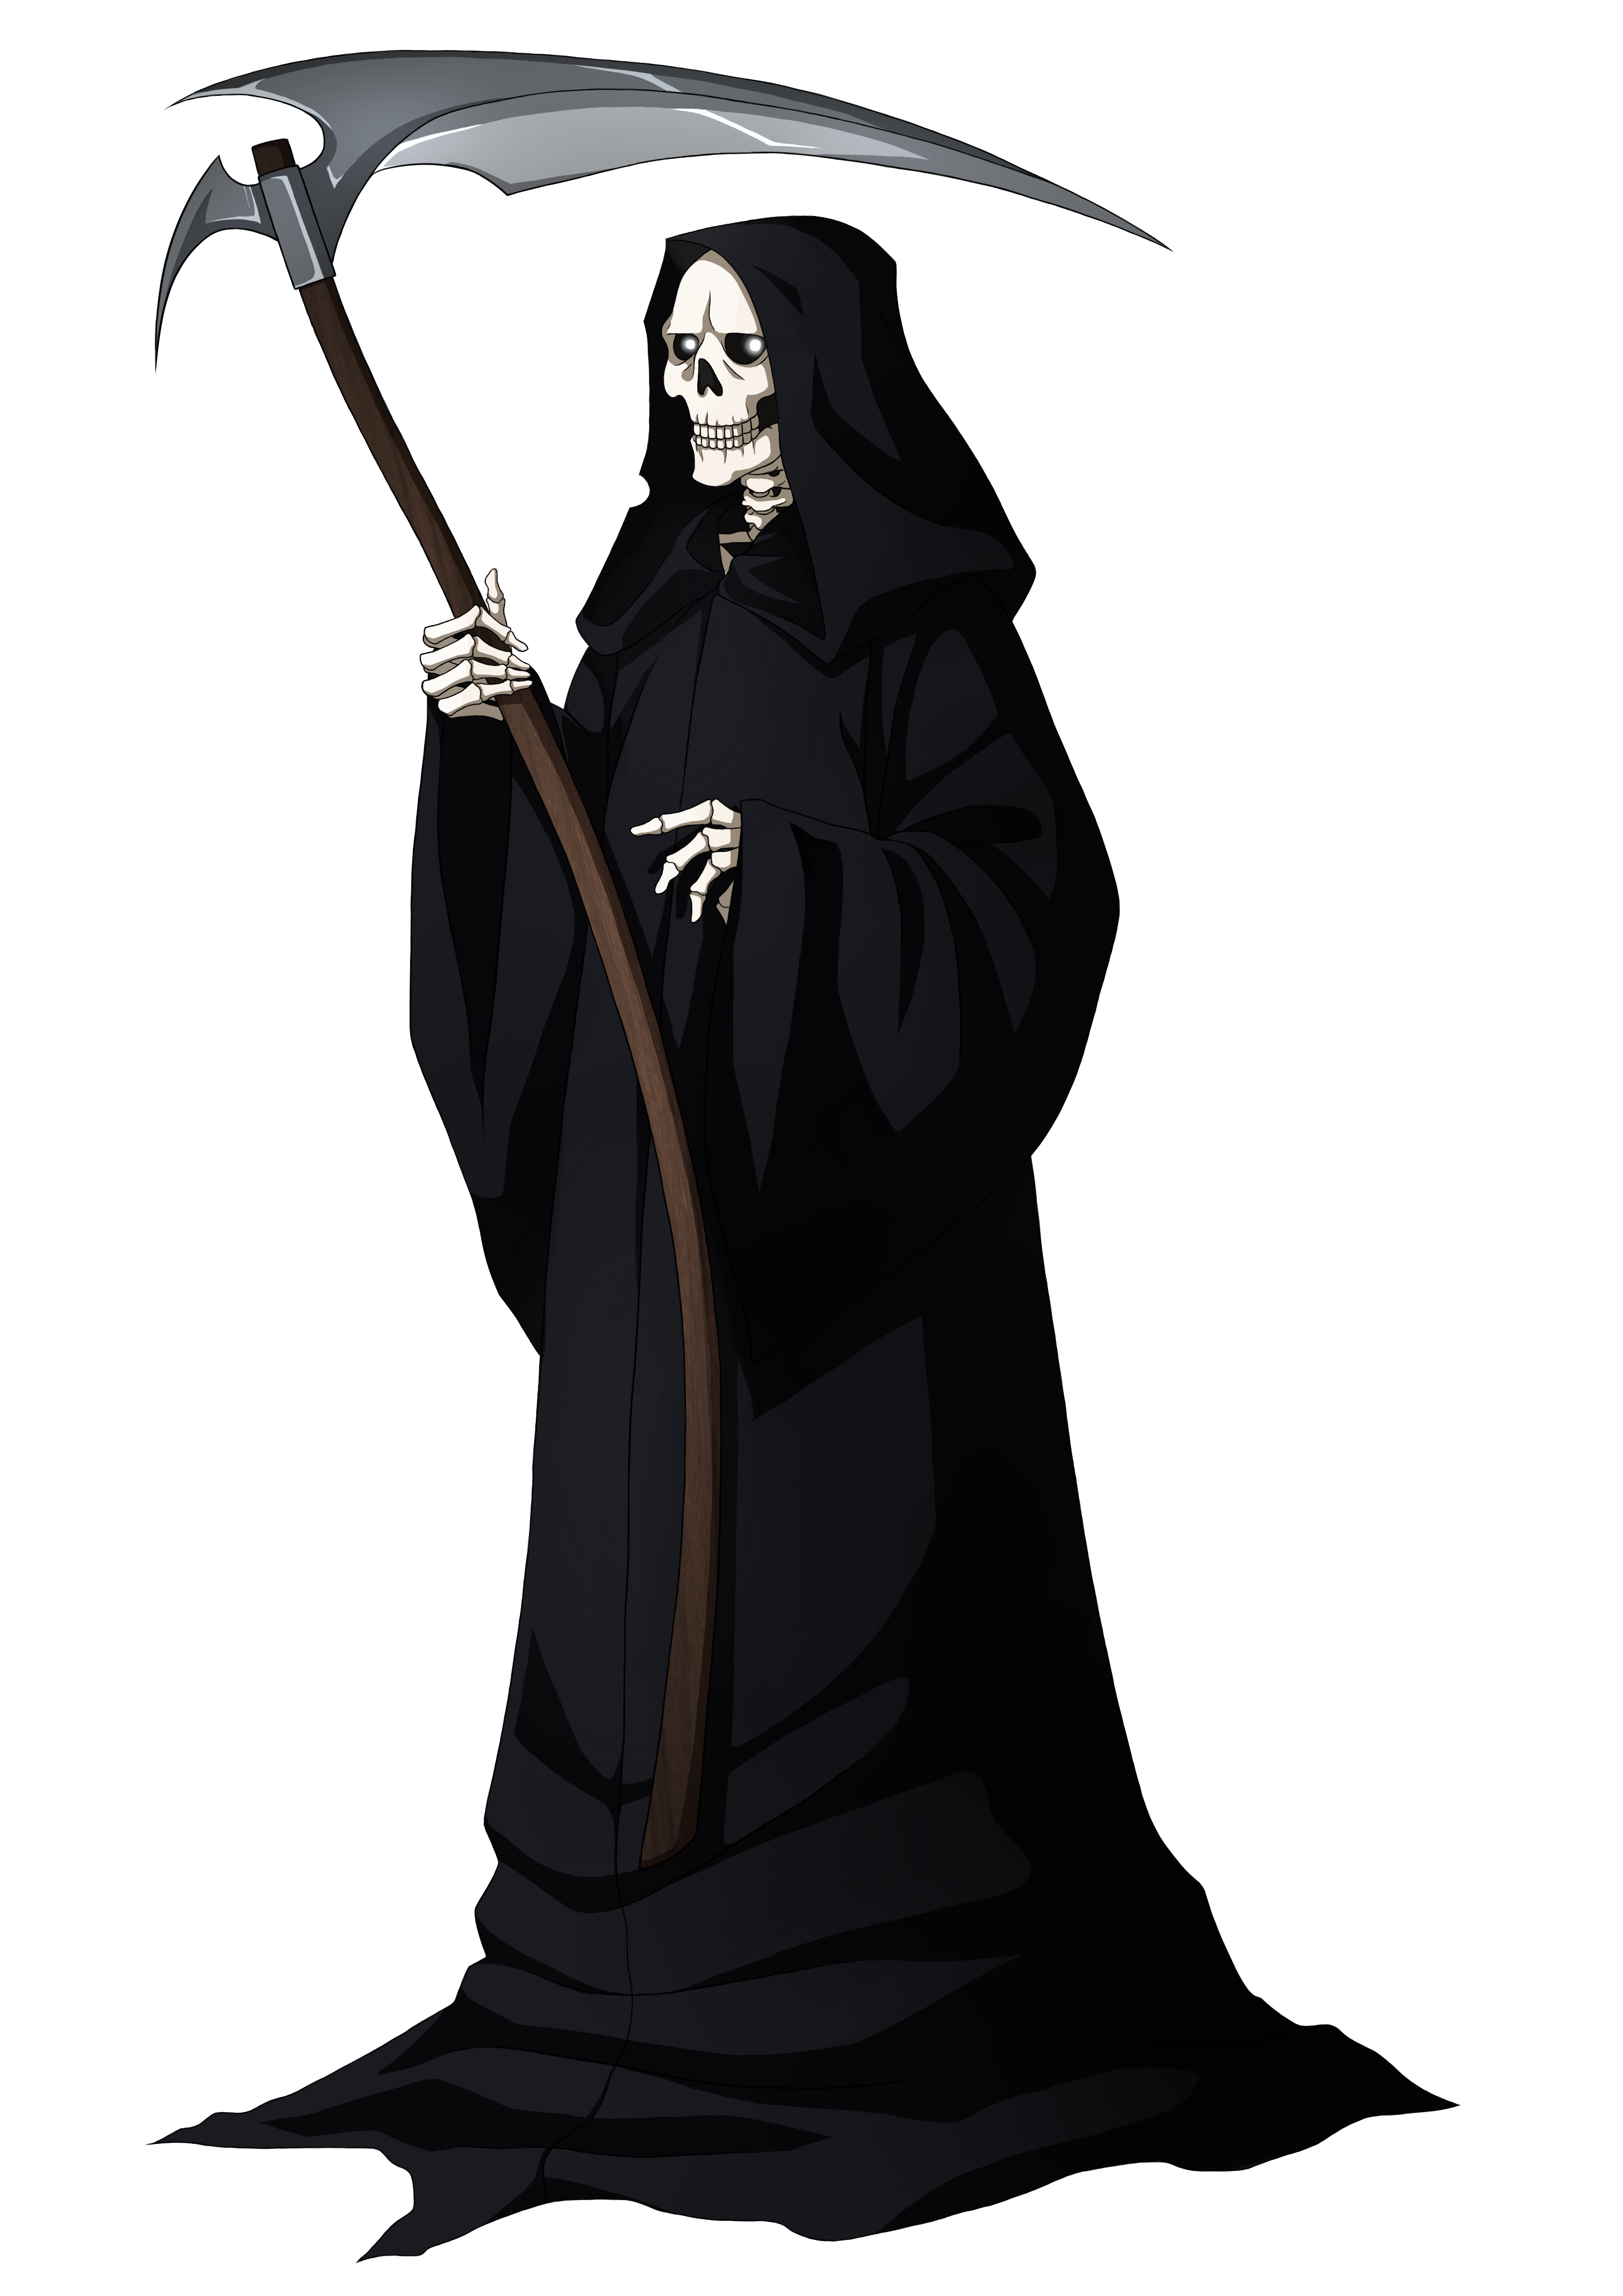 Death PNG images free download.